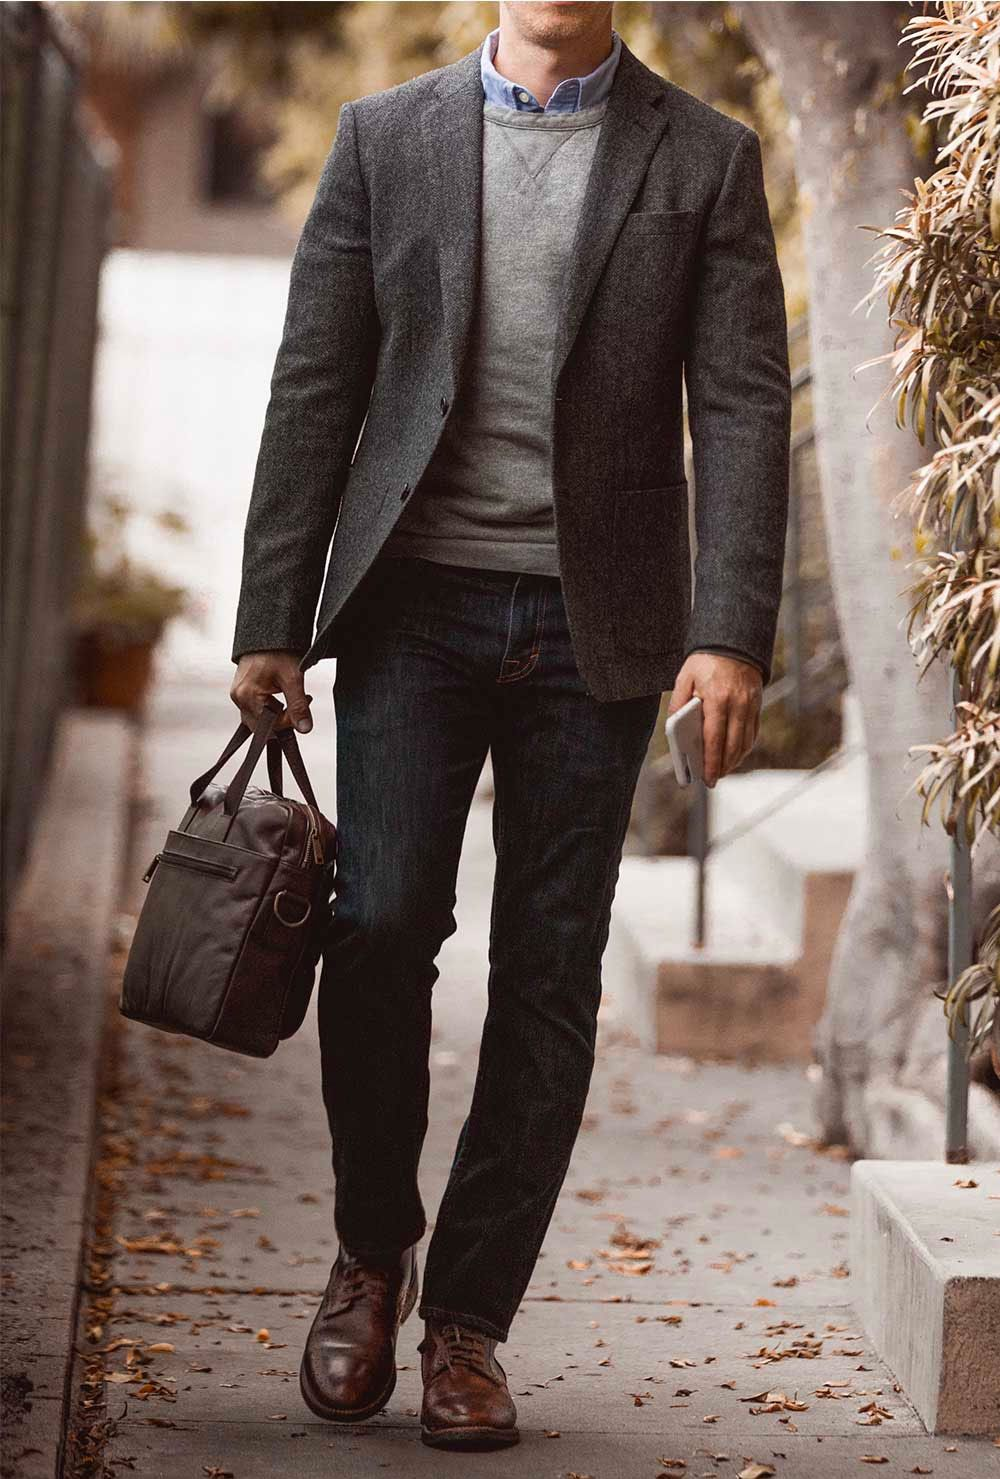 5955a3a0686f The Tweed Jacket: The Essential Cool-Weather Sport Coat | Fashion ...